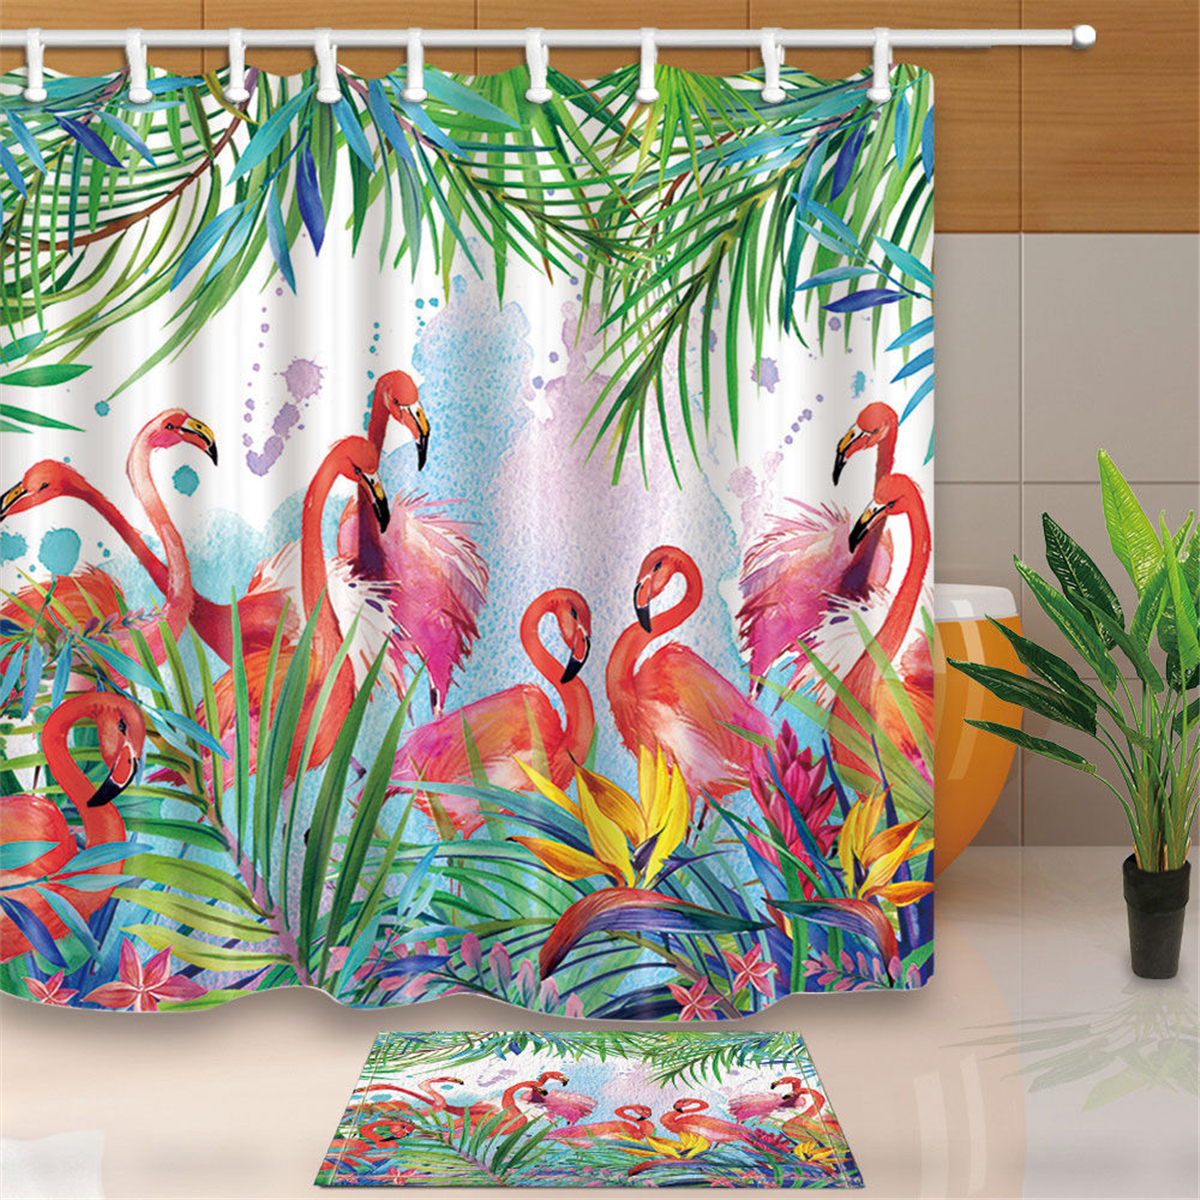 Tropical Flower Flamingo Shower Curtains Bath Curtains Bathroom Curtains Anti Bacterial Waterproof Polyester Fabric Hooks Included